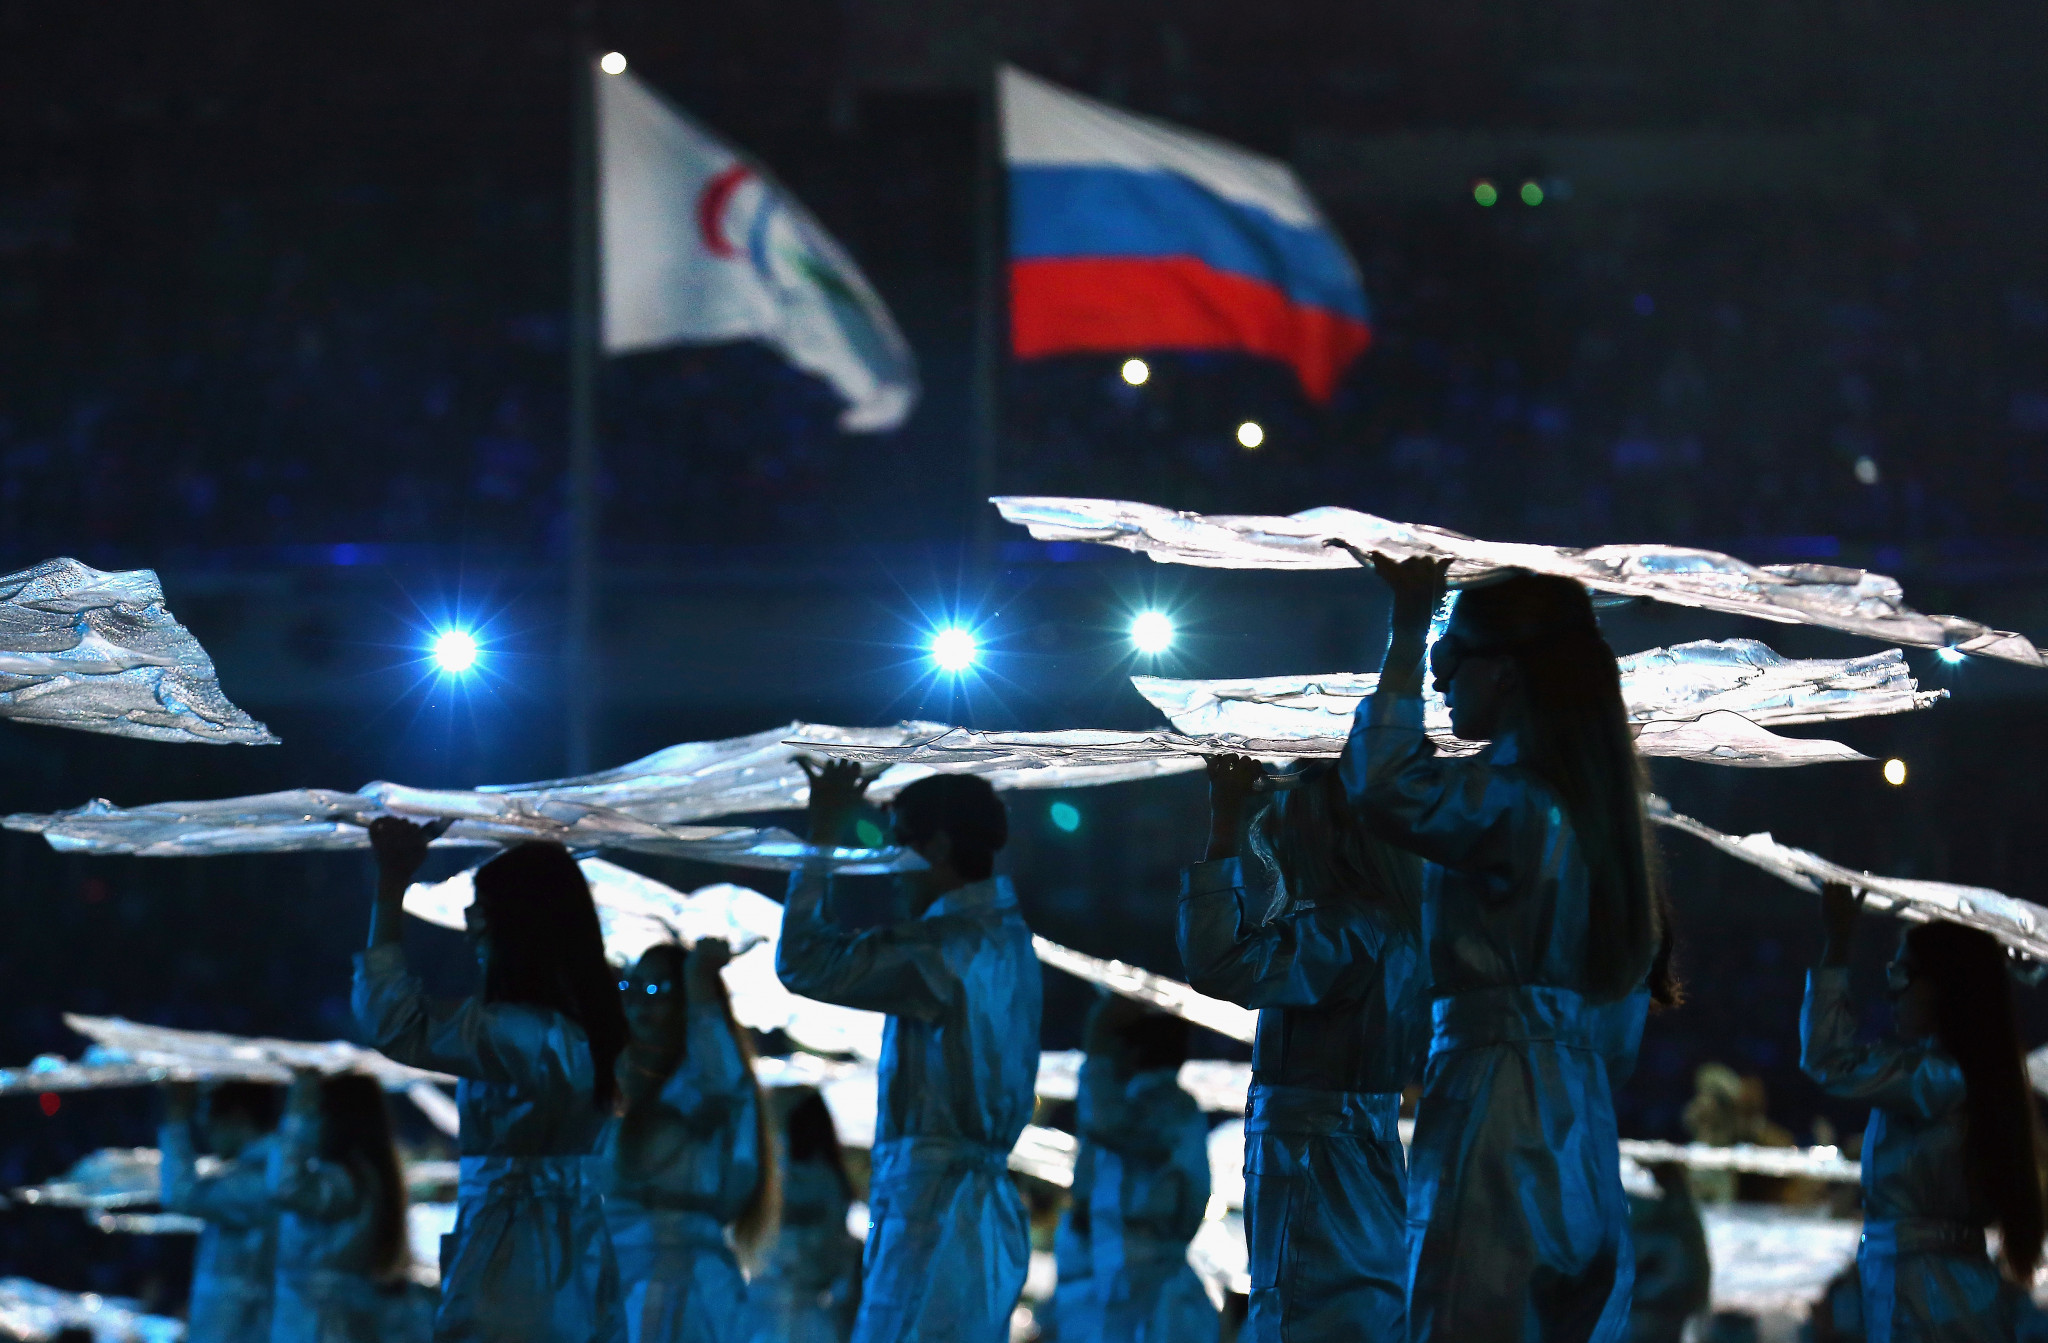 A total of 69 Russian athletes competed at the 2014 Winter Paralympics in Sochi ©Getty Images